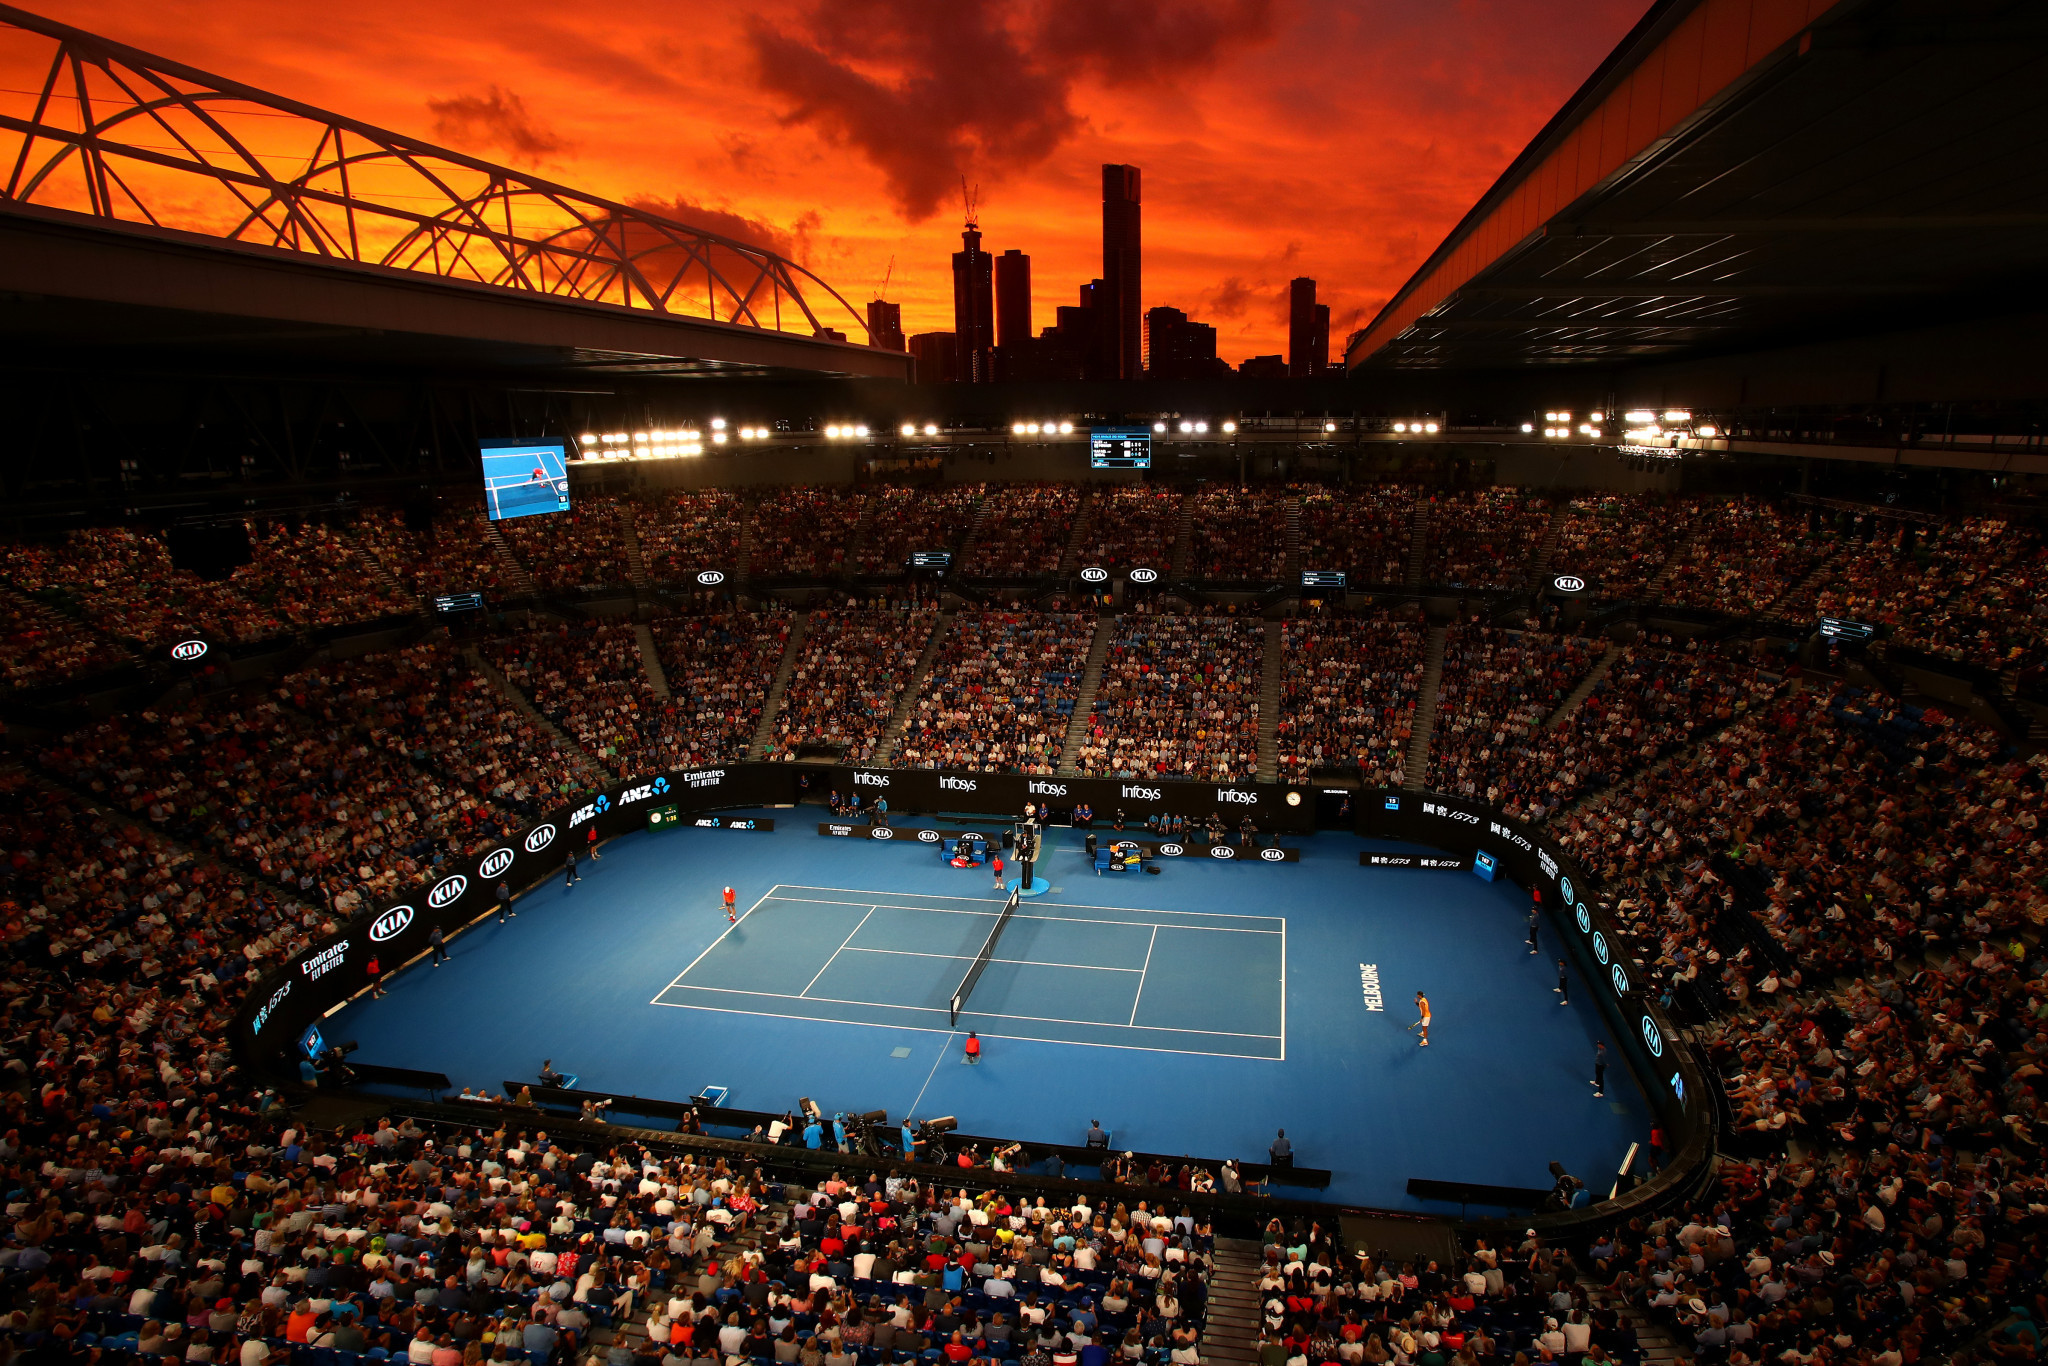 Organisers optimistic for Australian Open despite coronavirus measures